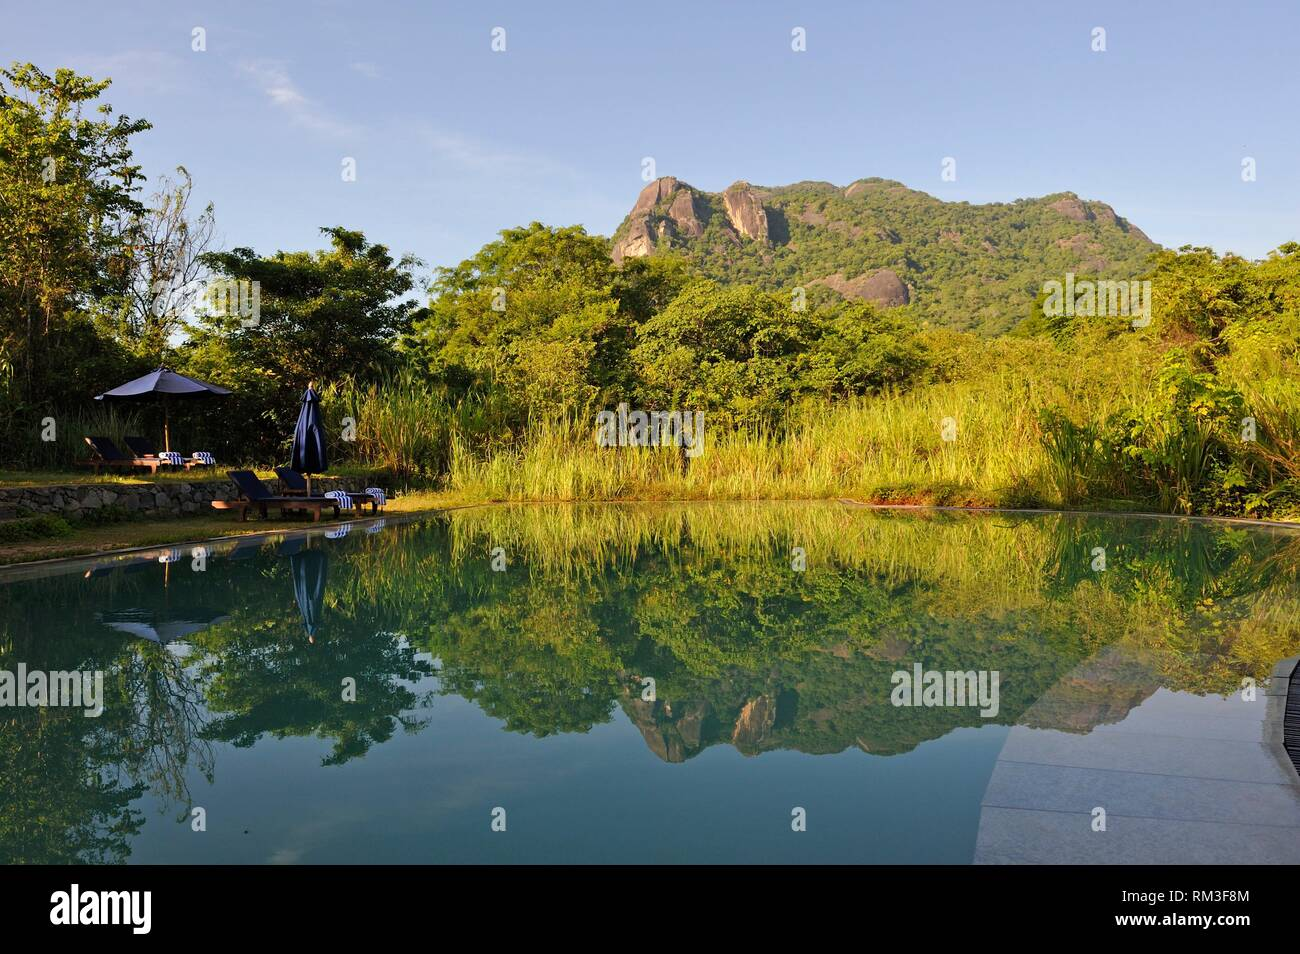 Schwimmbad in Gal Oya Lodge, Gal Oya Nationalpark, Sri Lanka, Indien, Südasien. Stockbild